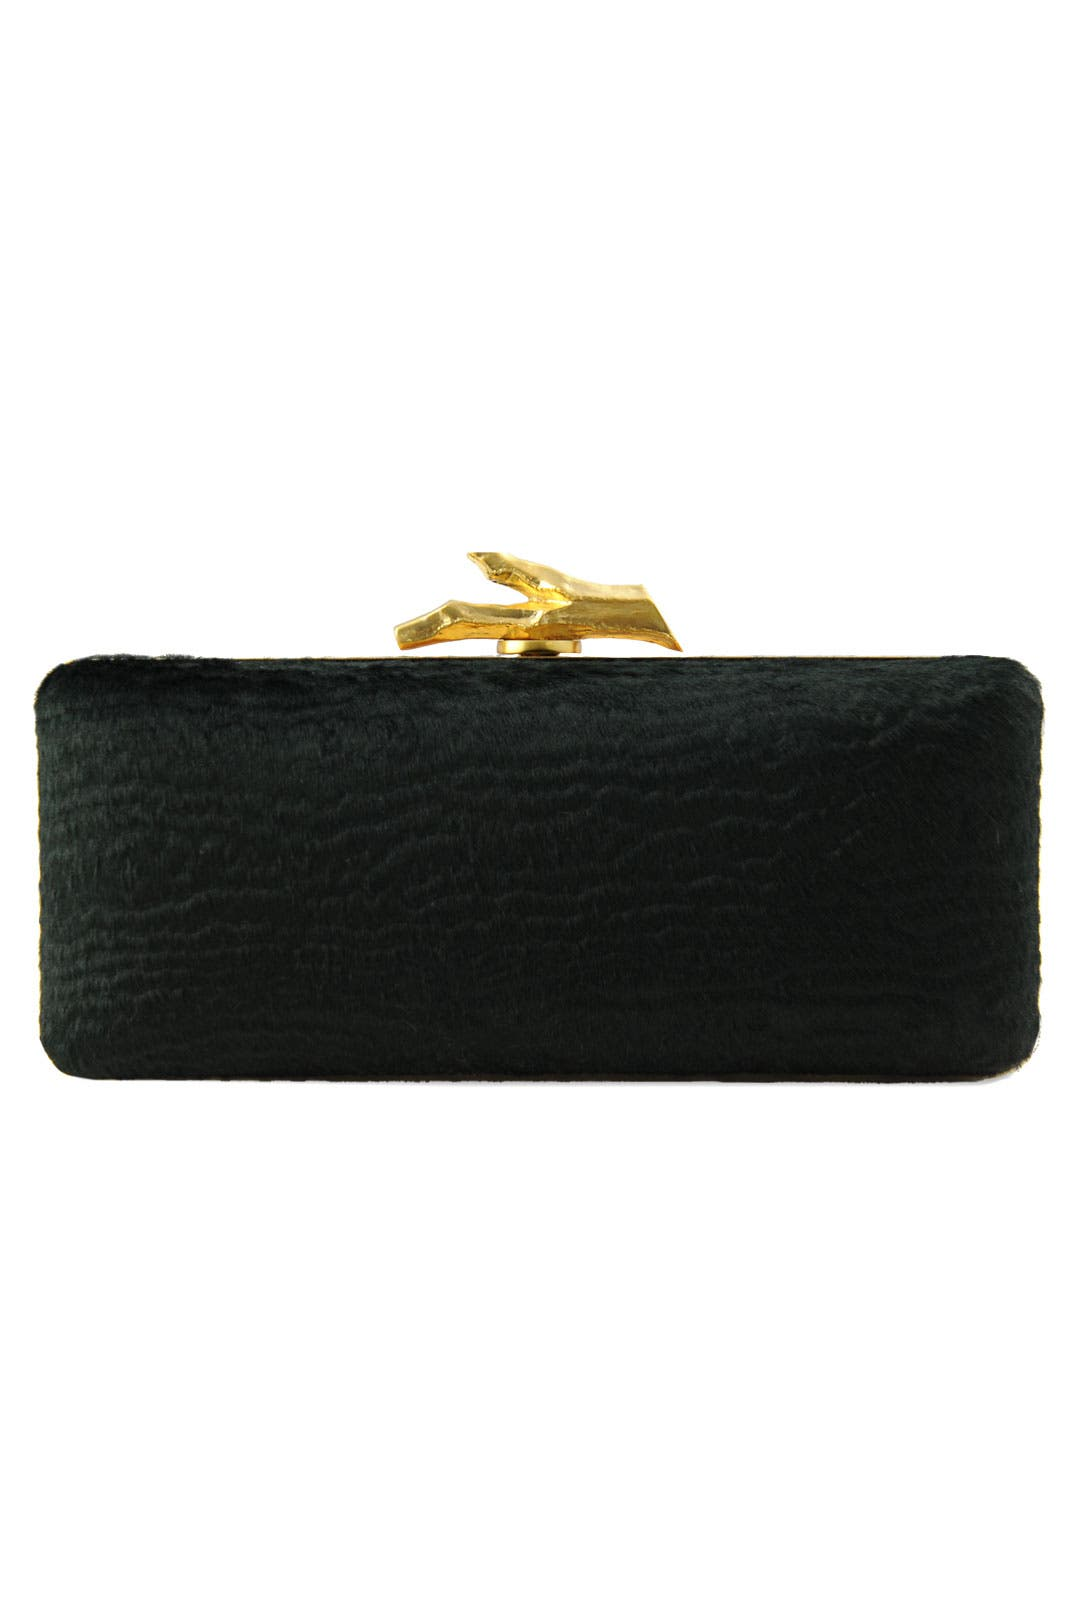 Forest Tonda Pony Clutch by Diane von Furstenberg Handbags